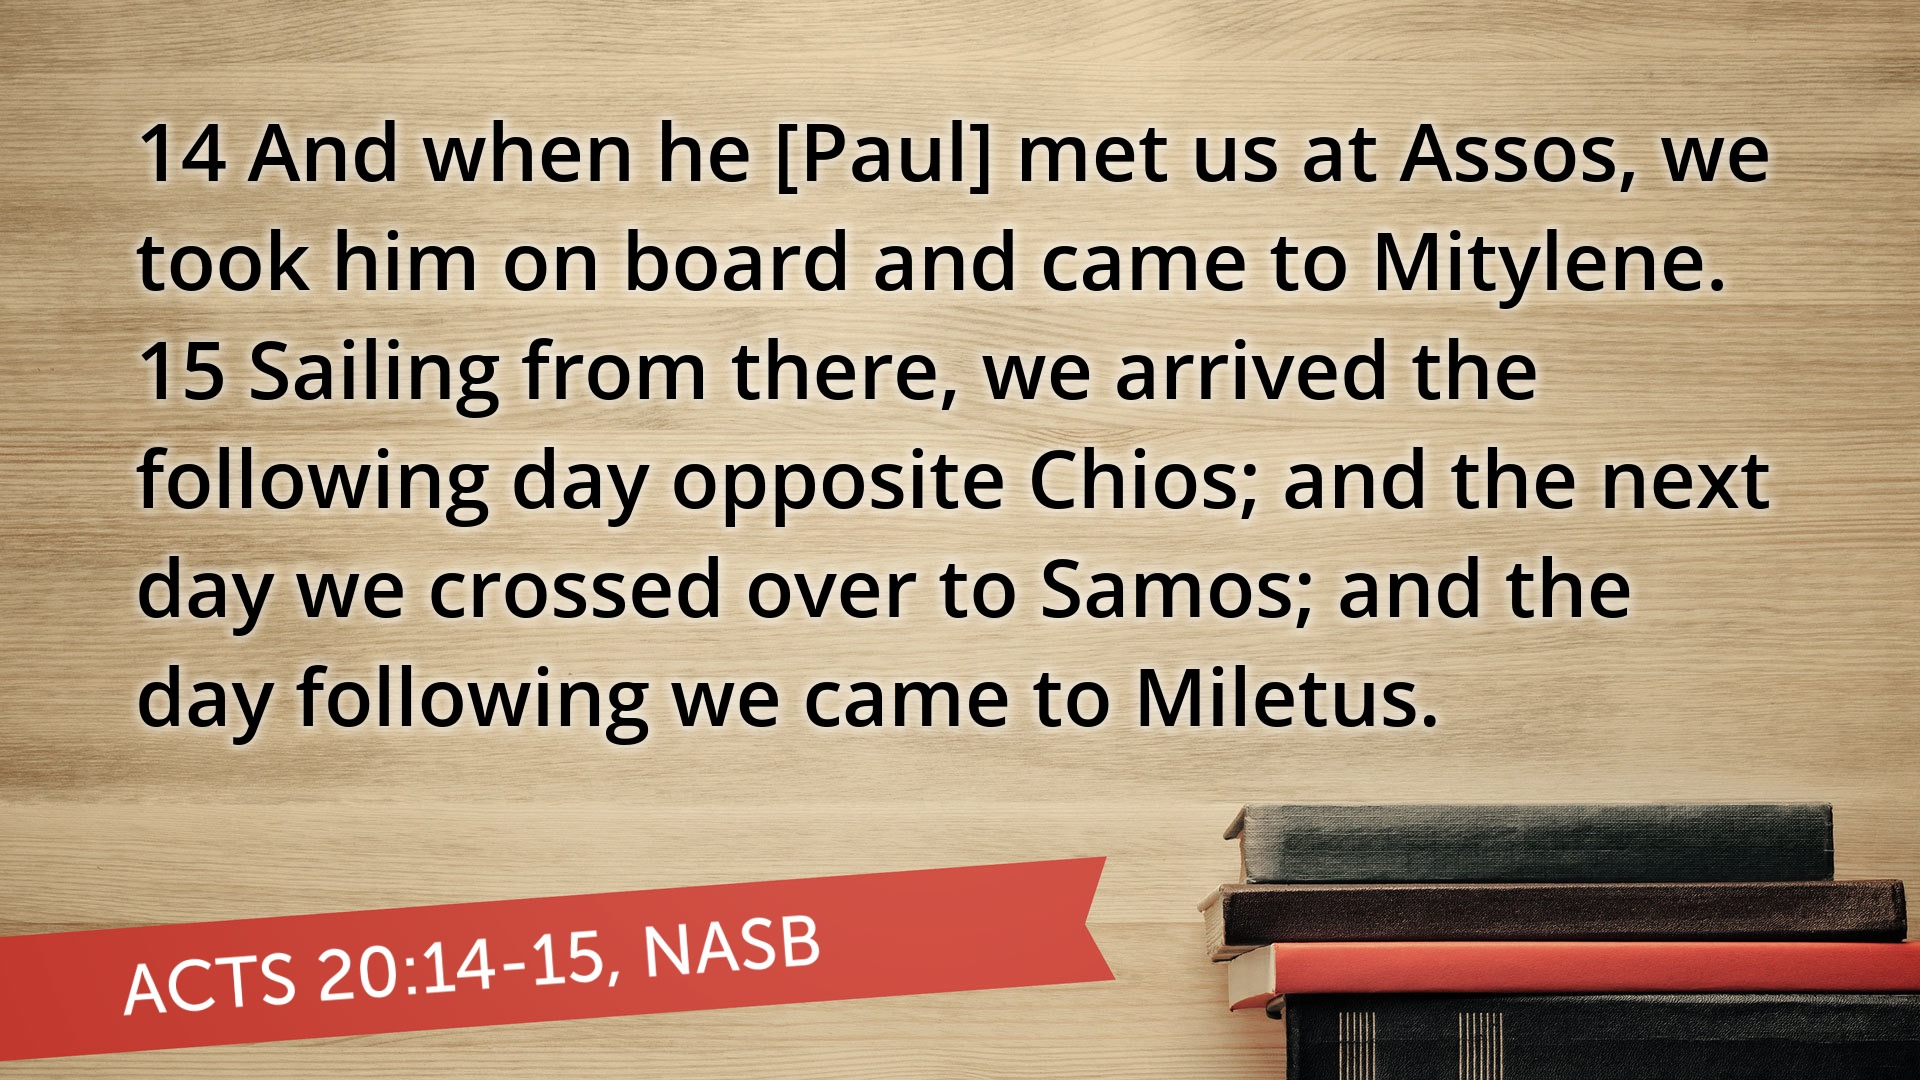 Acts 20:14-15. Only biblical mention of Samos.